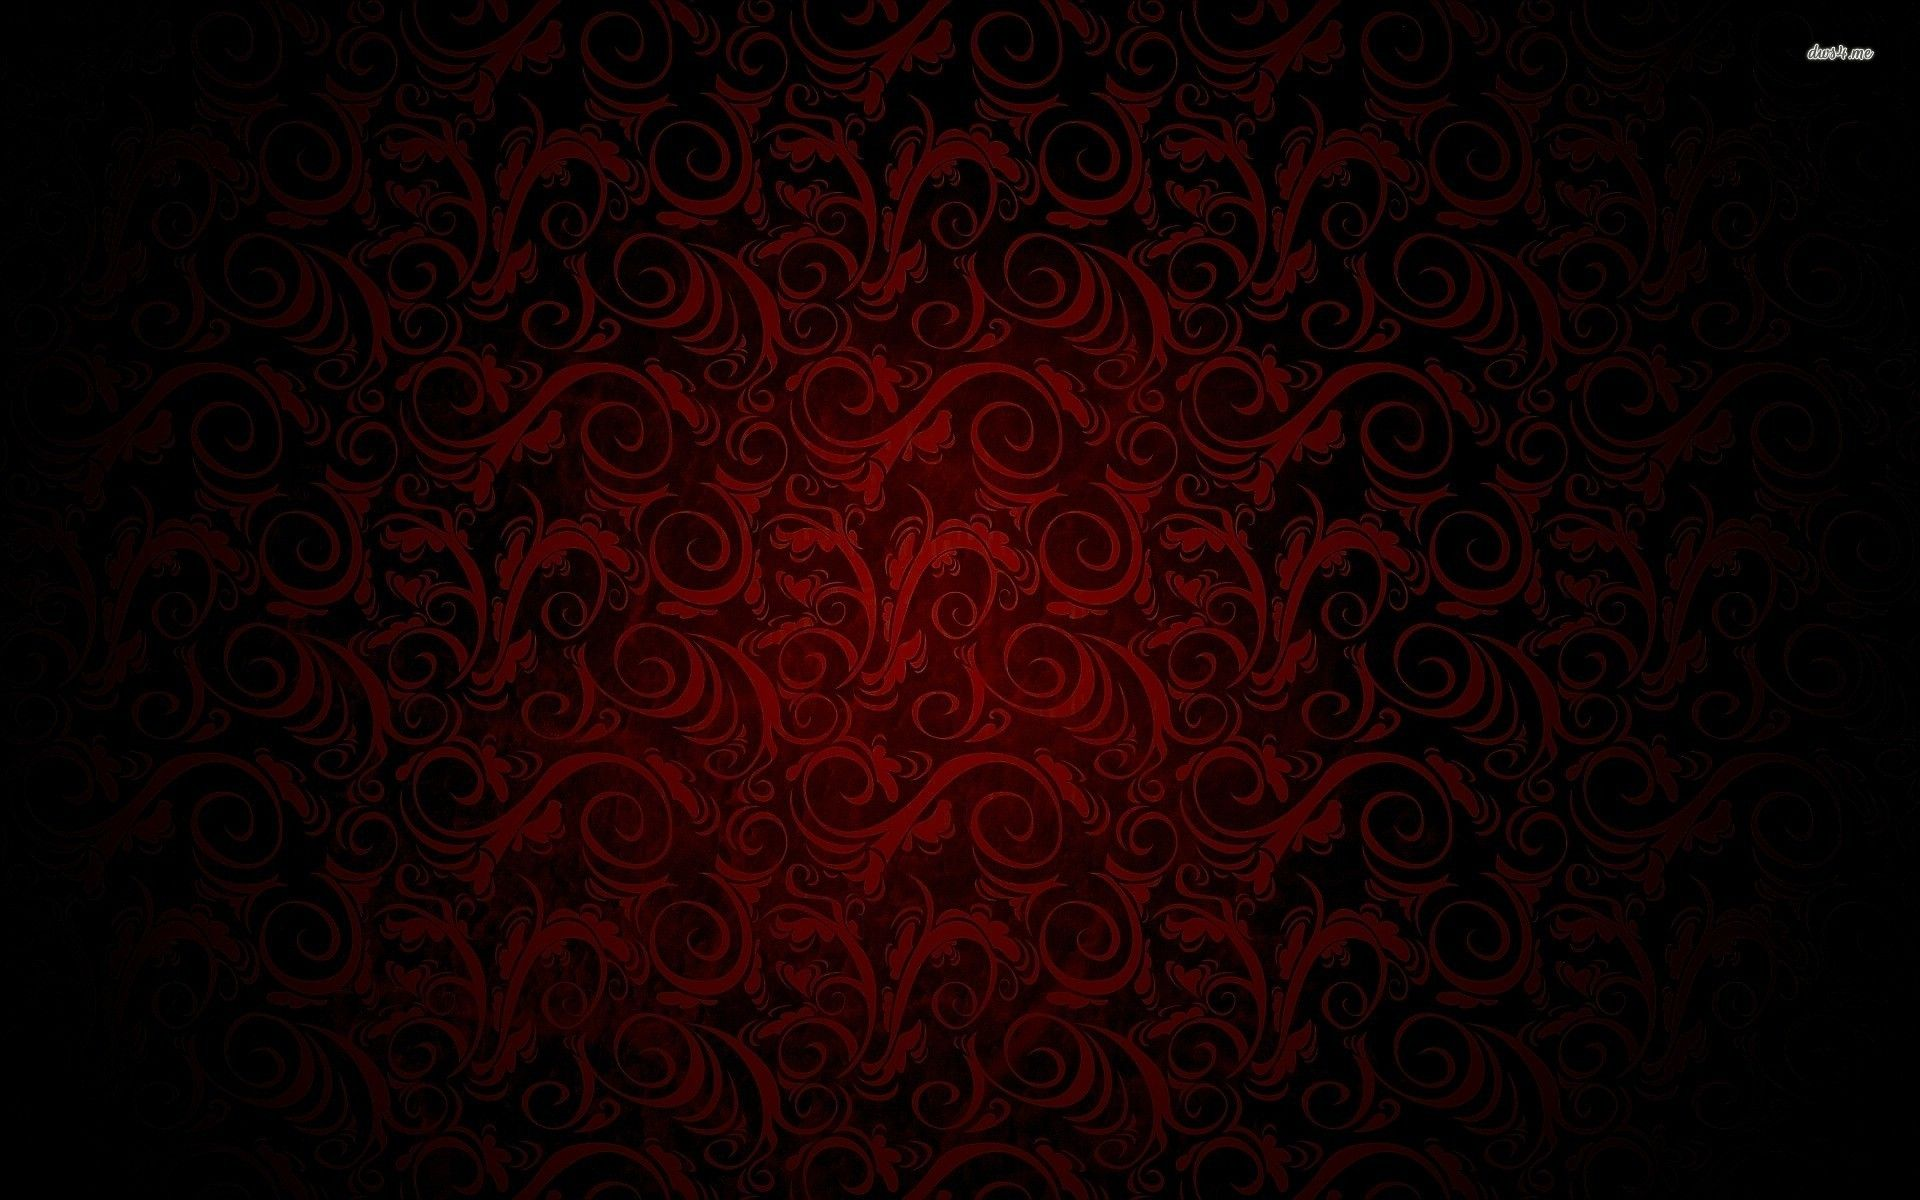 swirling royal red and black pattern wallpaper pictures